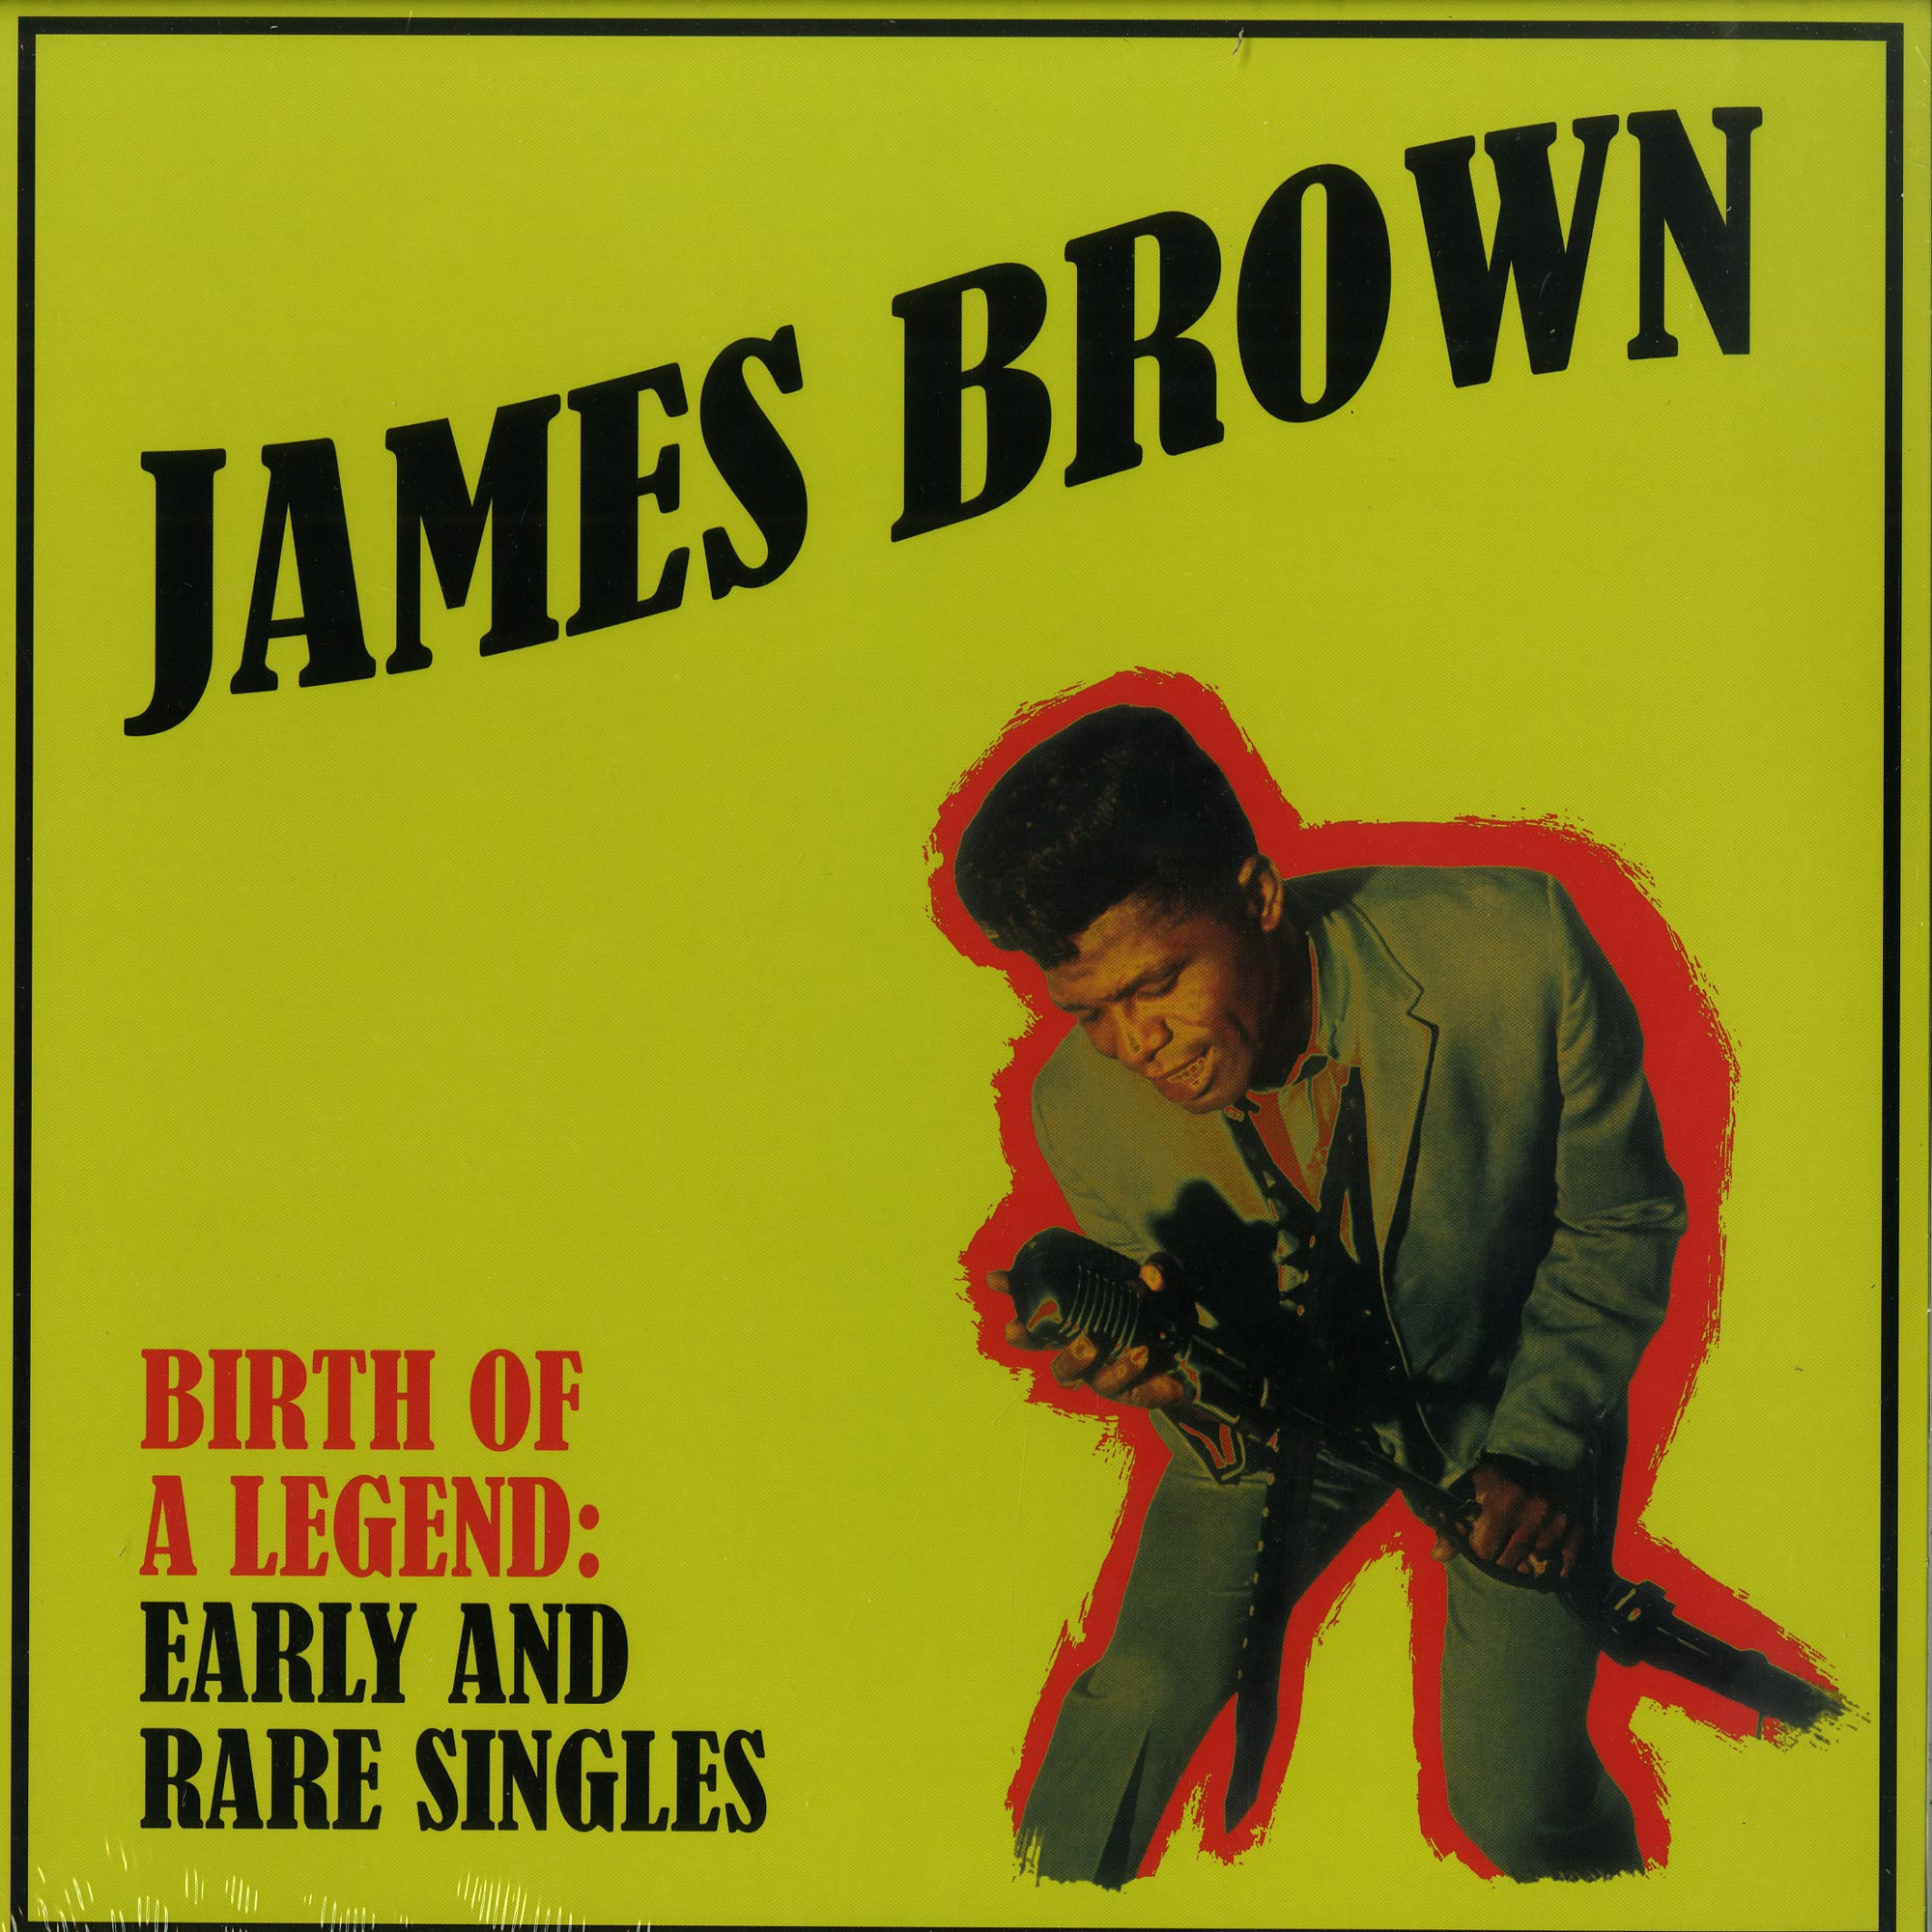 James Brown - BIRTH OF A LEGEND: EARLY AND RARE SINGLES